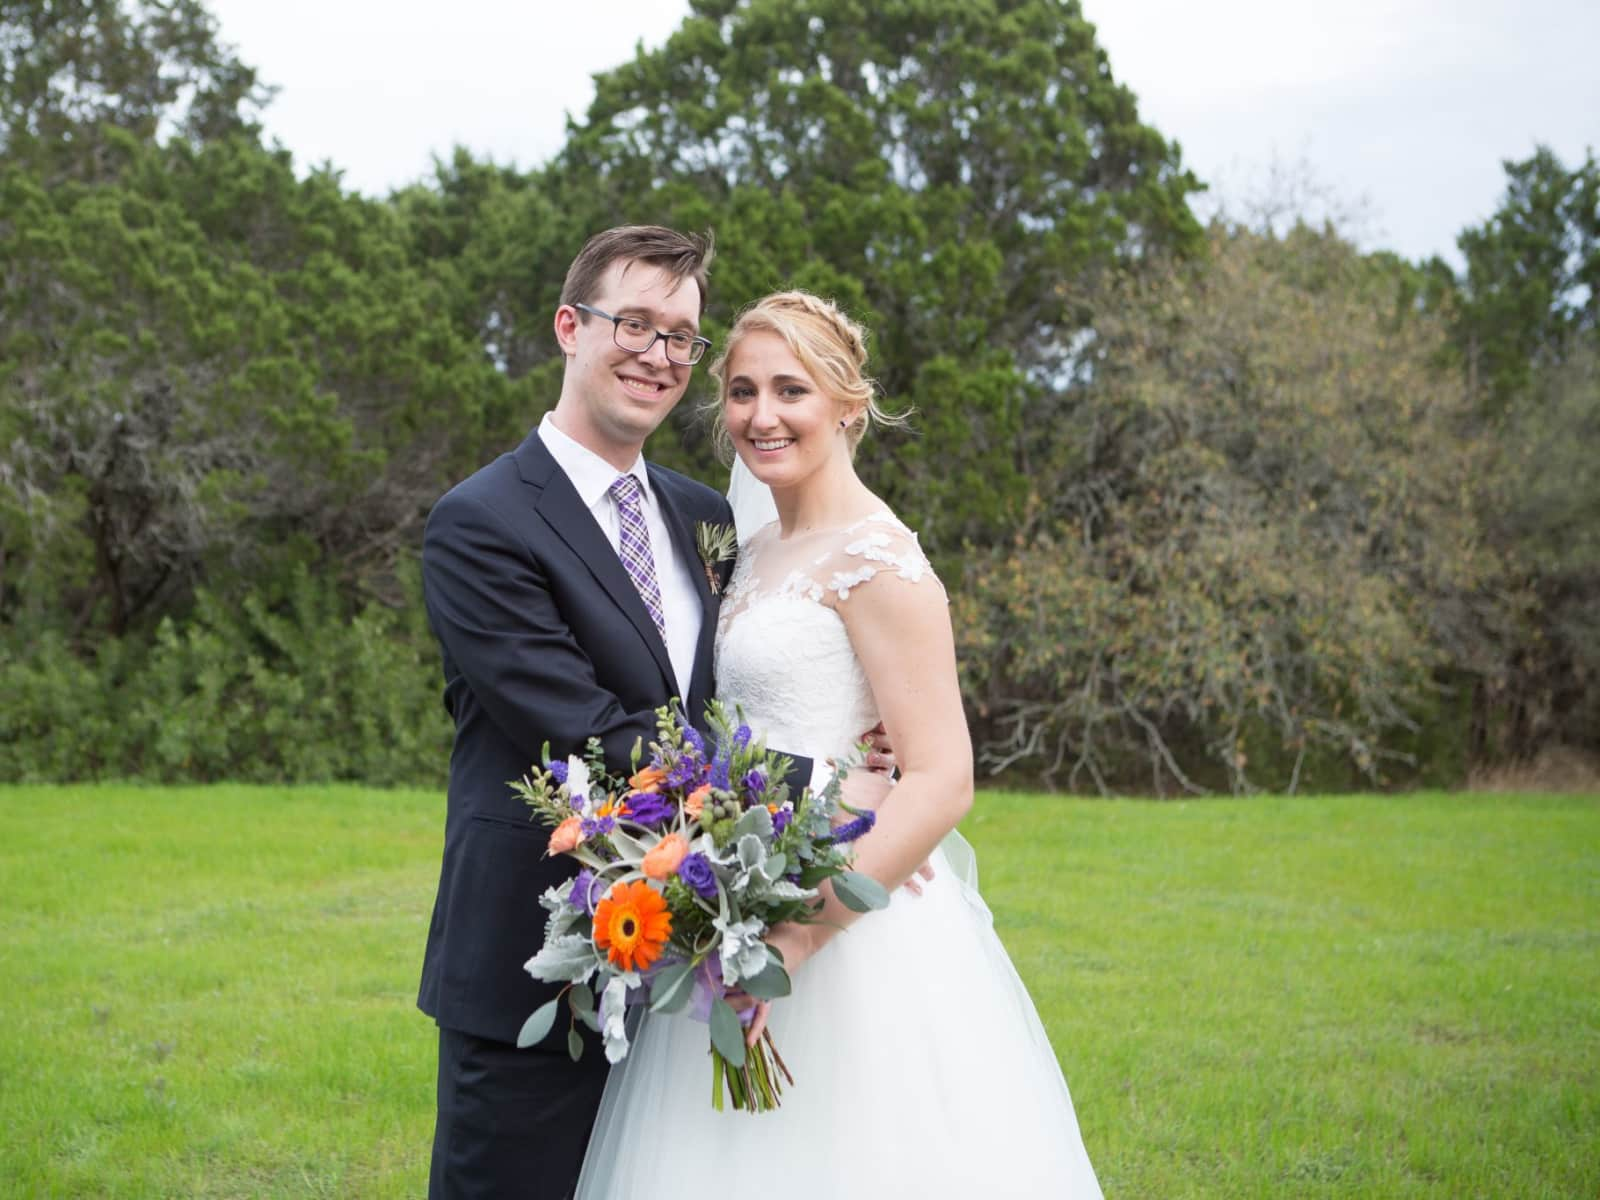 Marie & Andrew from Dallas Downtown, Texas, United States